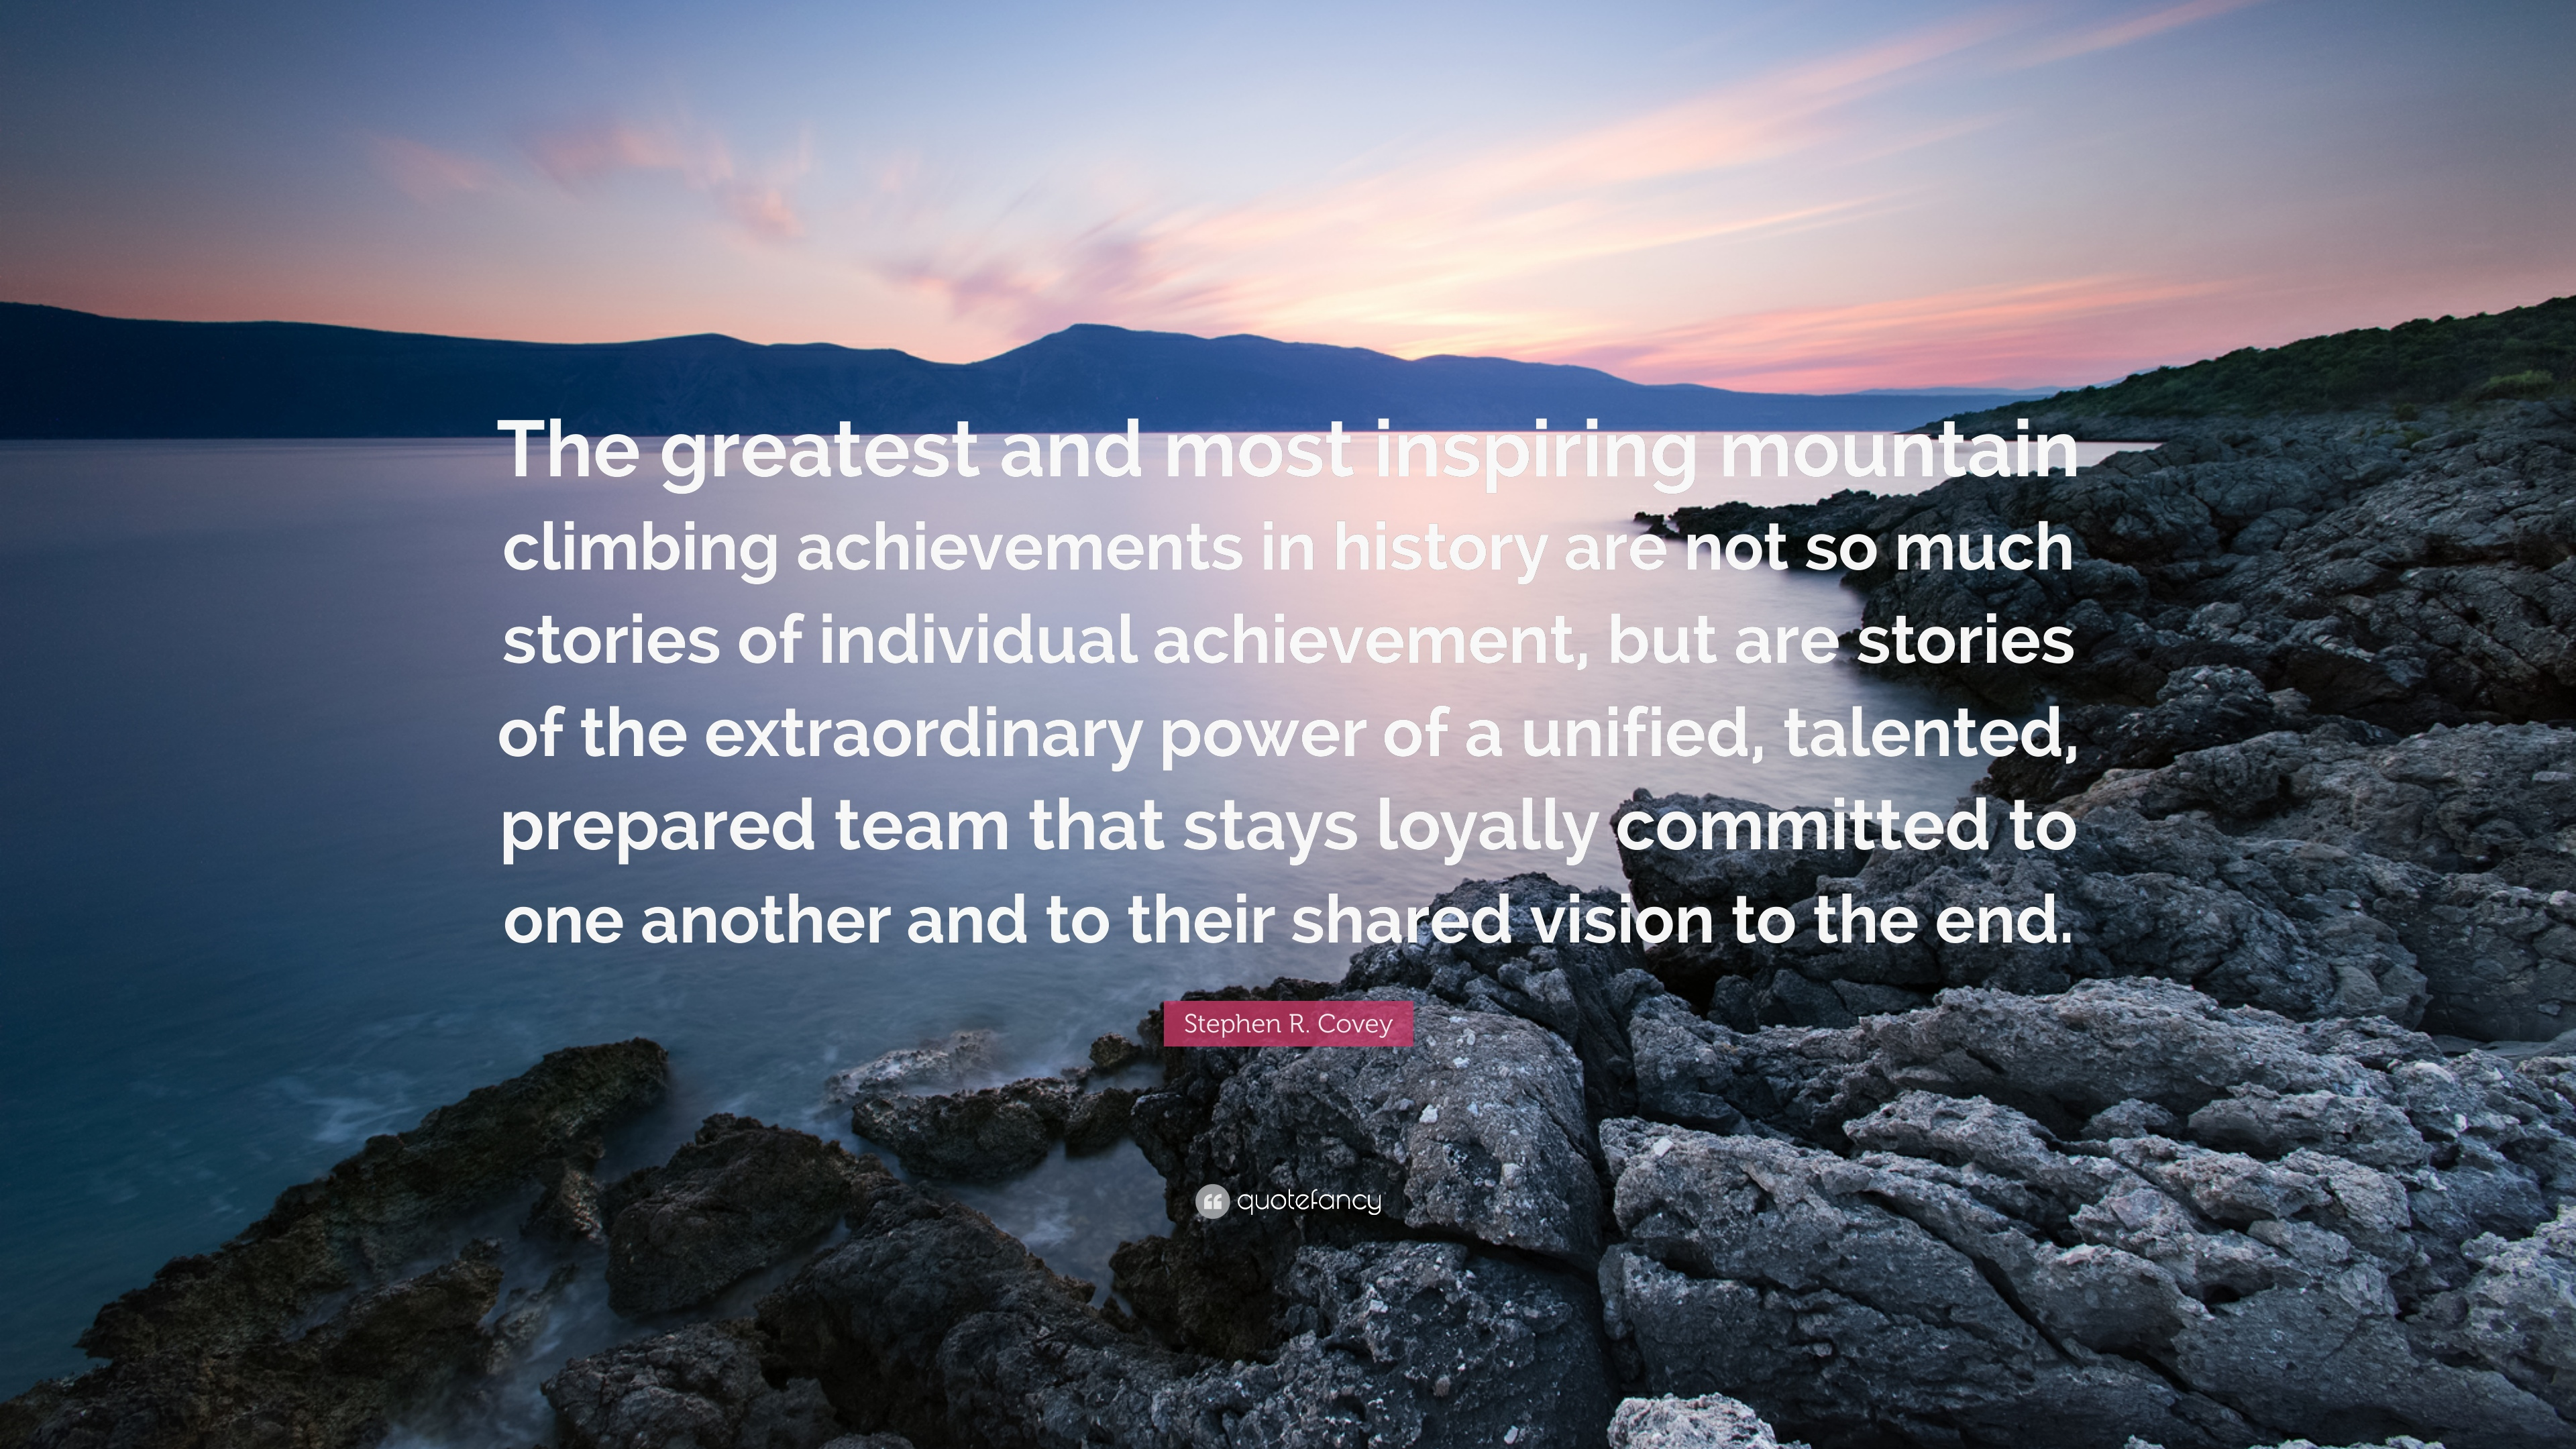 stephen r covey quote the greatest and most inspiring mountain stephen r covey quote the greatest and most inspiring mountain climbing achievements in